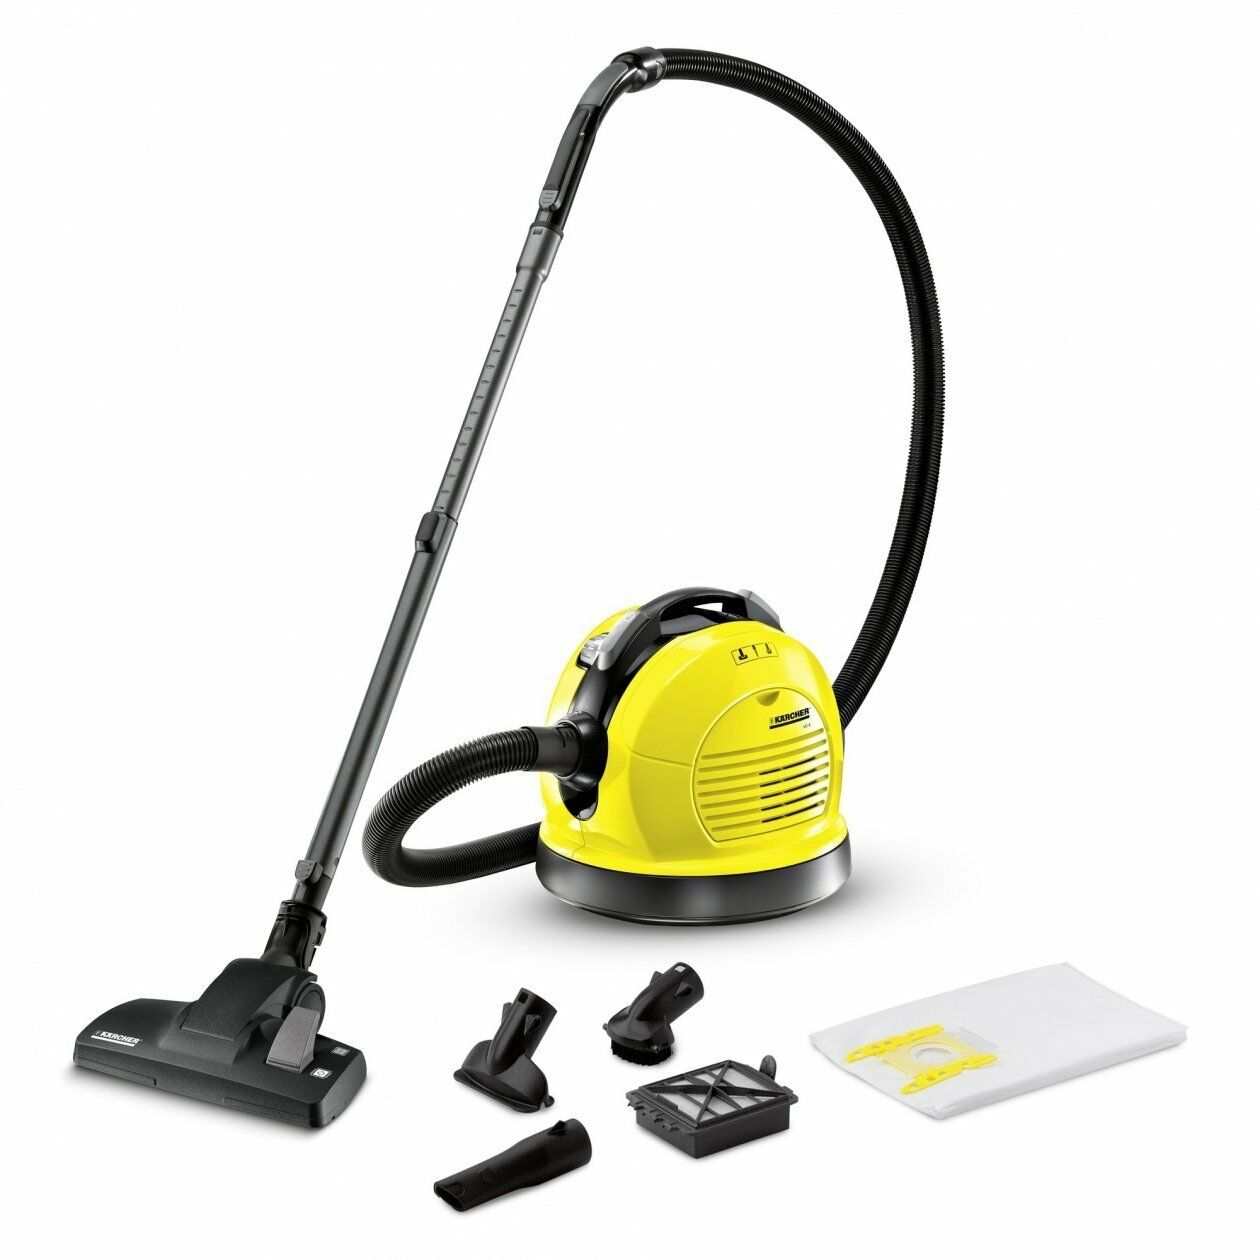 Karcher VC 6, 600 W 135.3oz 73 Decibels Yellow System Easy-Slide prevents the